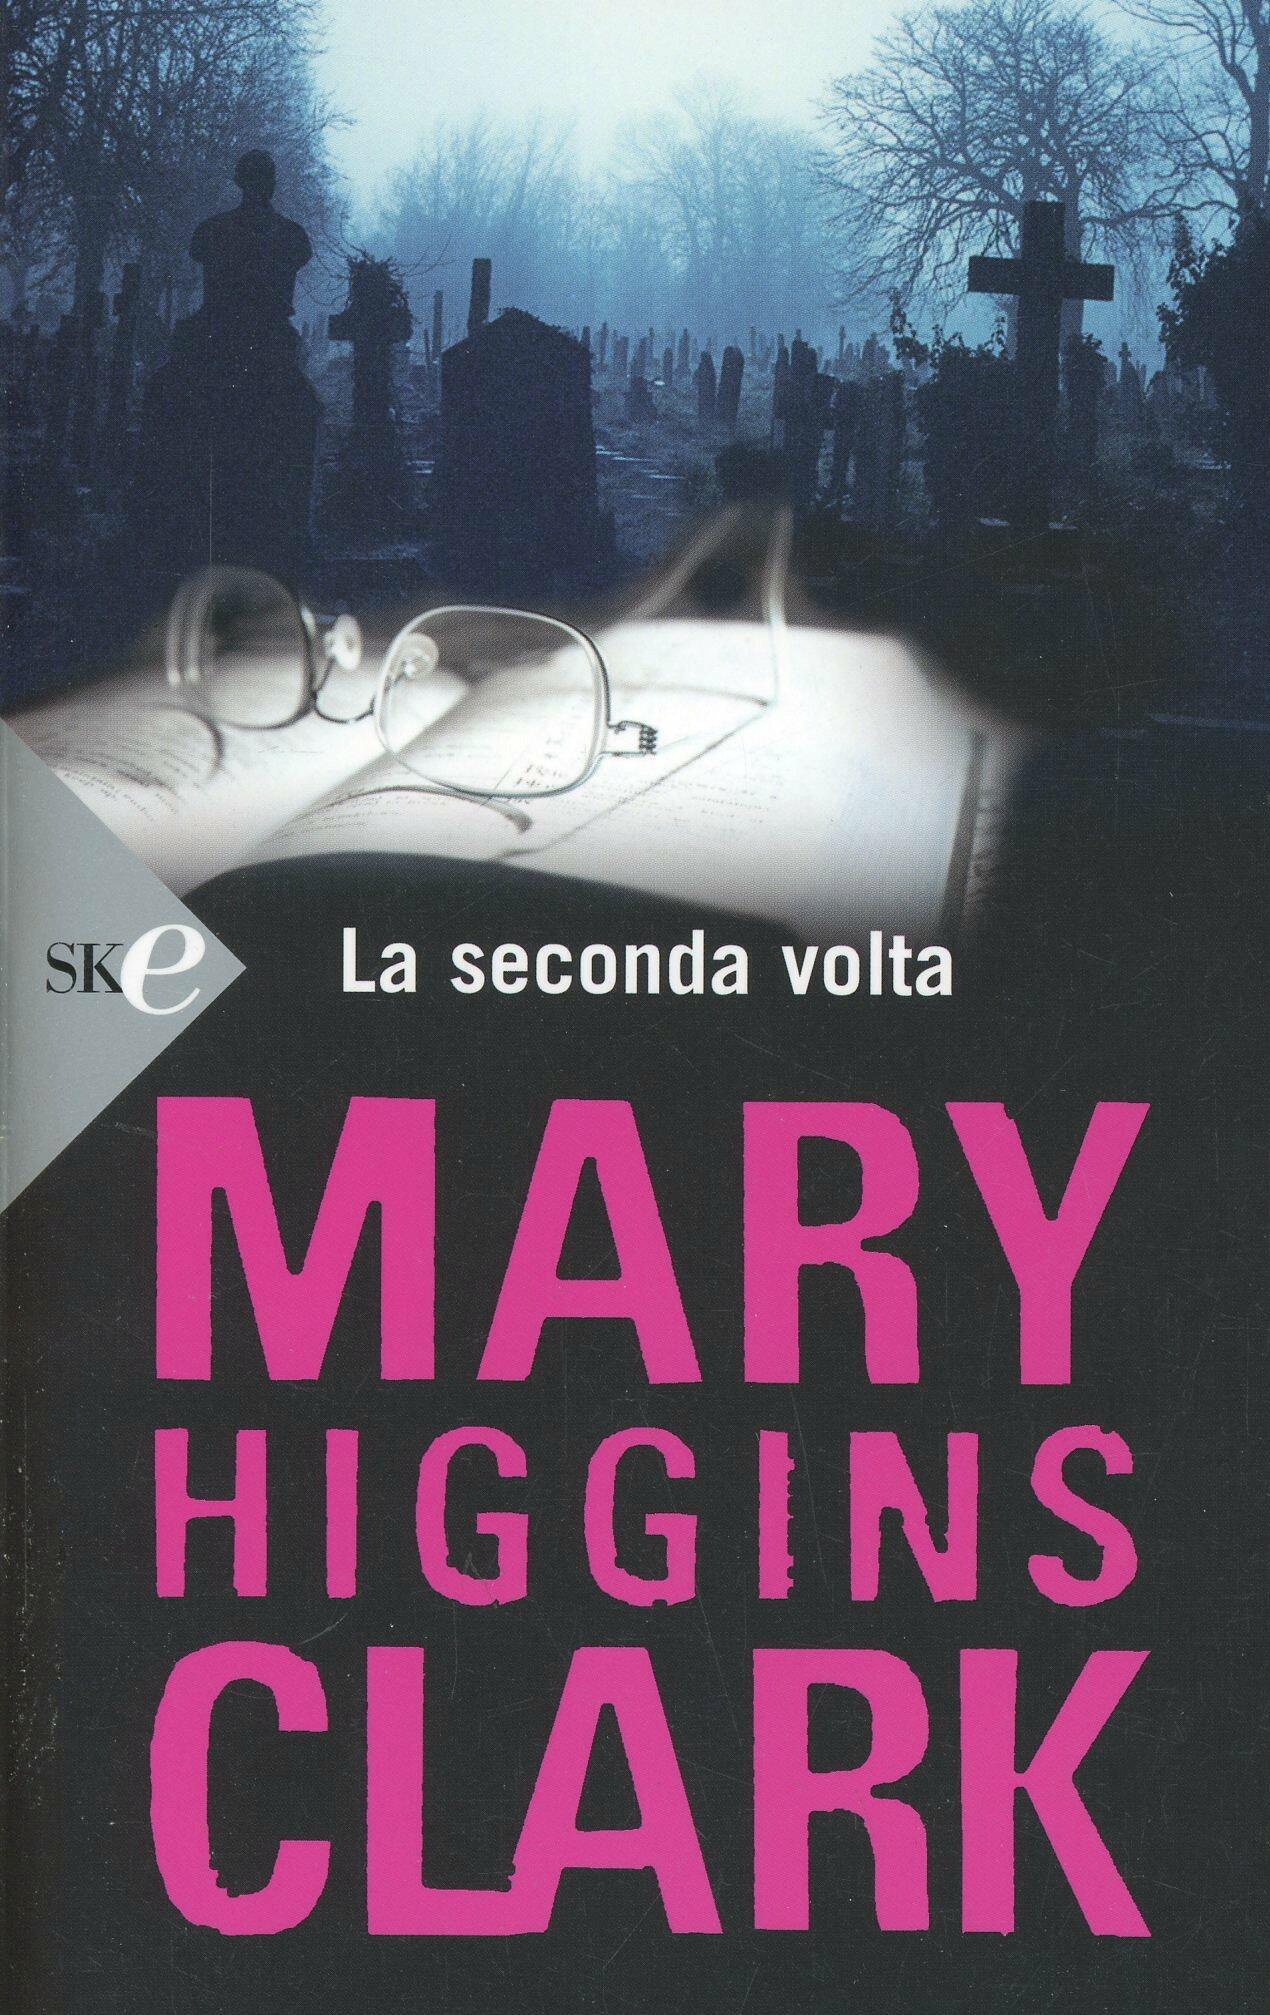 Mary Higgins Clark Mejores Libros La Seconda Volta Mary Higgins Clark Libro Sperling